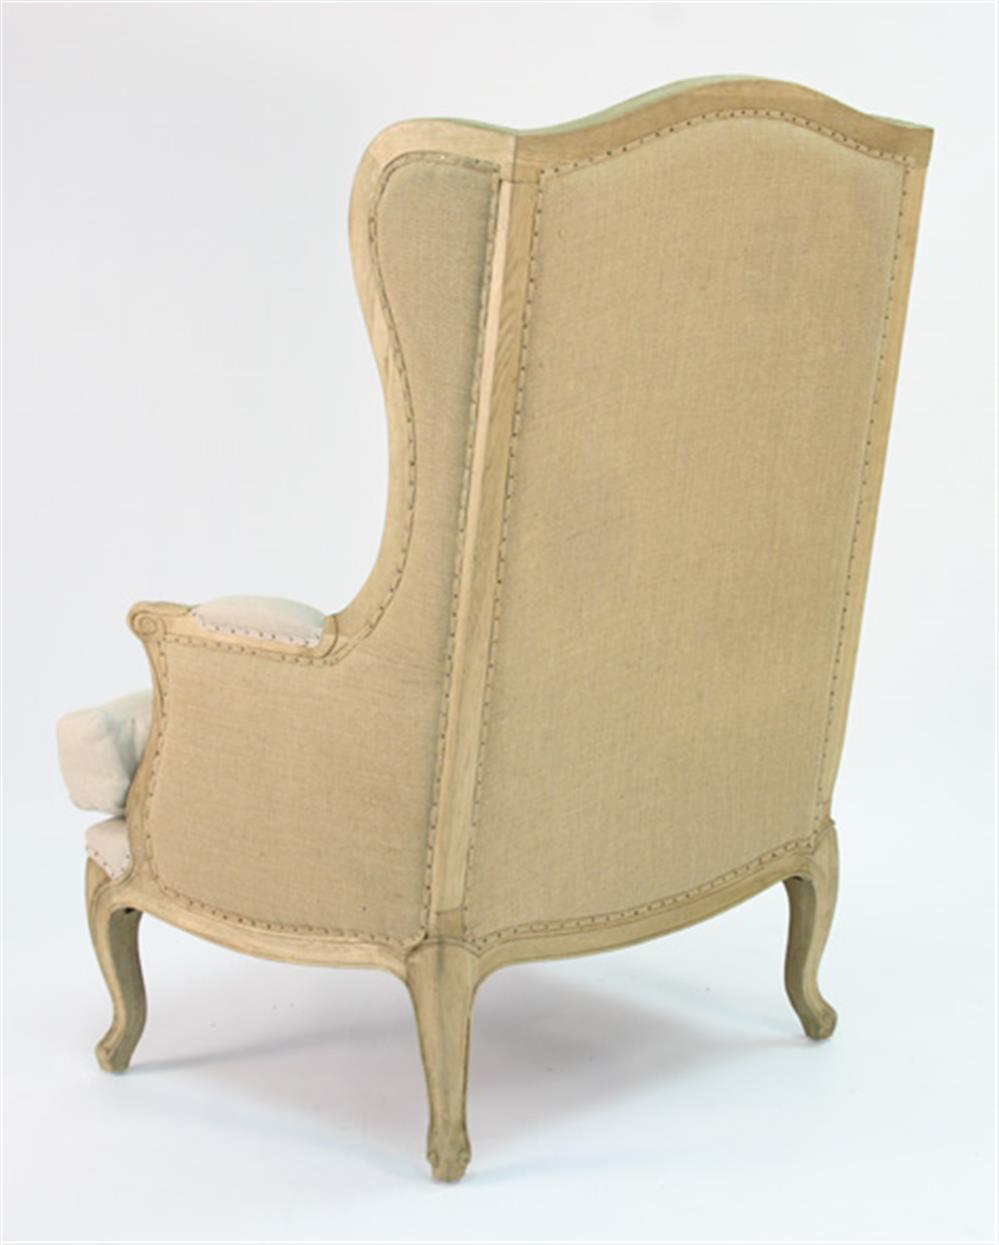 Leon French Country High Back Linen Wing Chair Kathy Kuo Home View Full Size